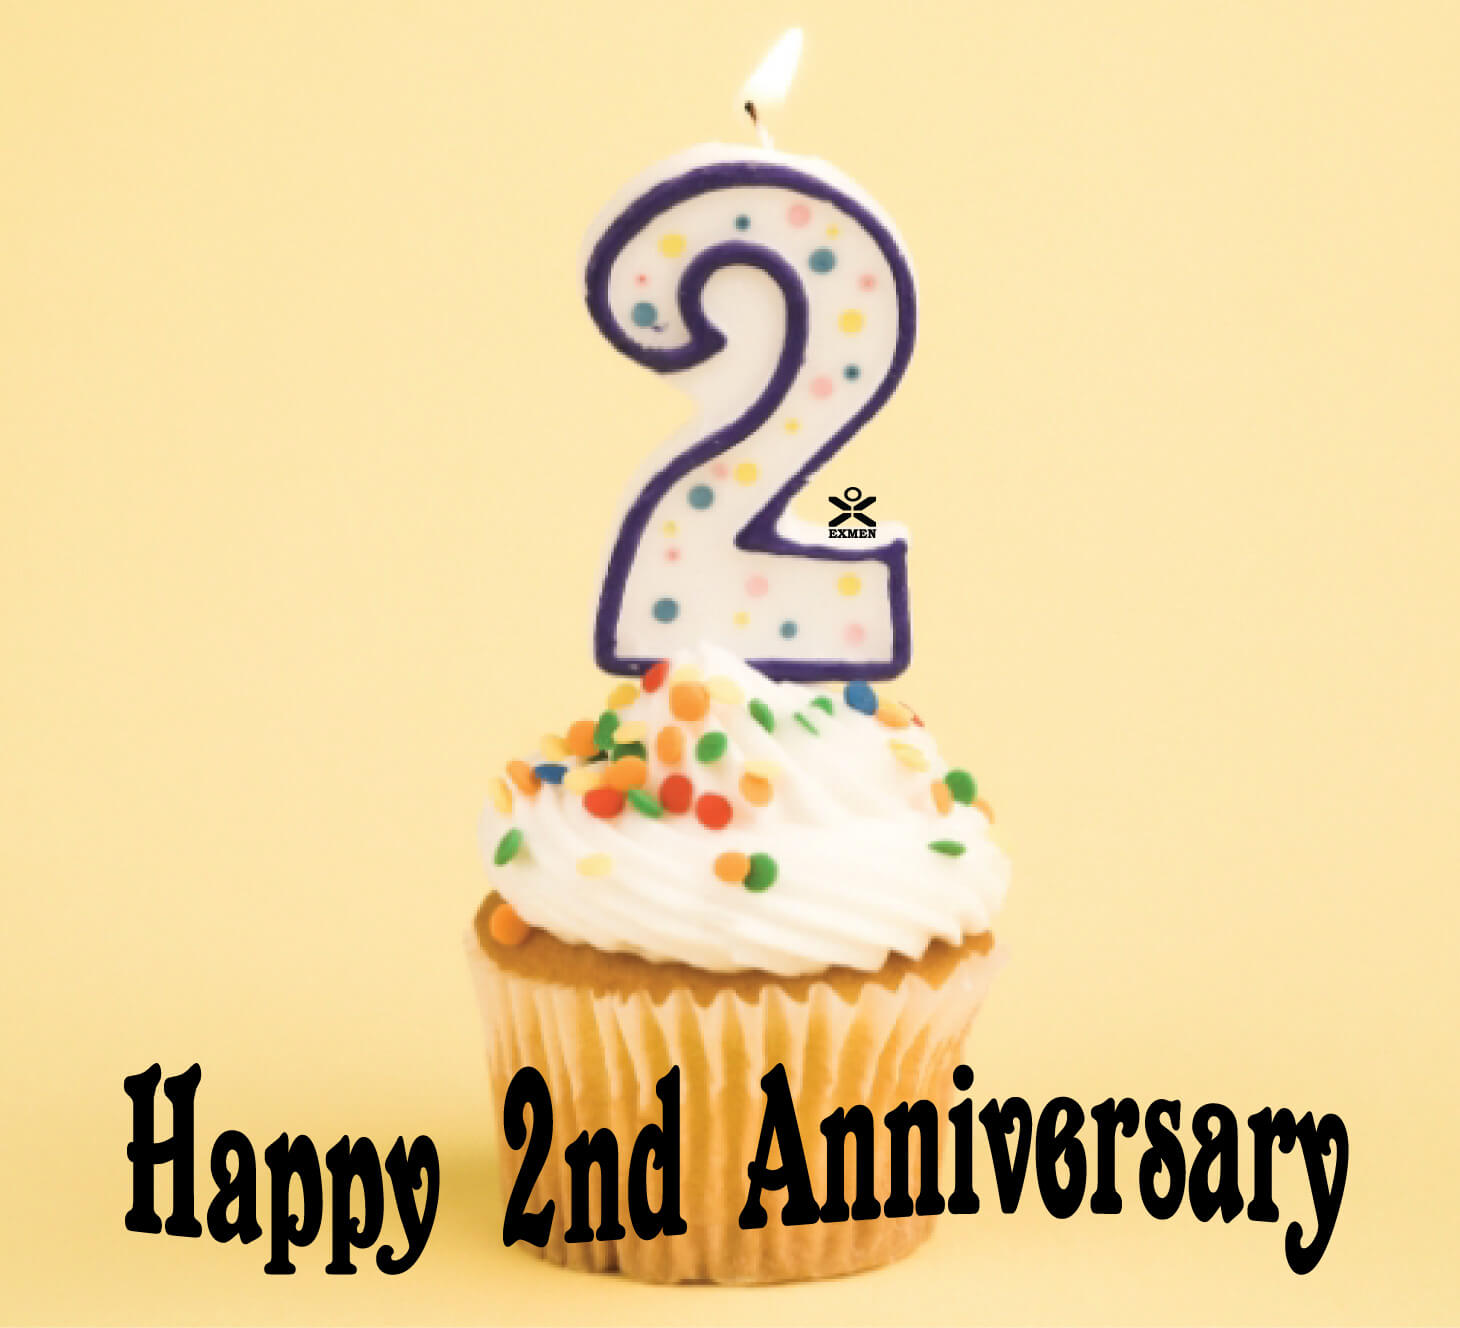 Happy 2nd anniversary wishes for brother